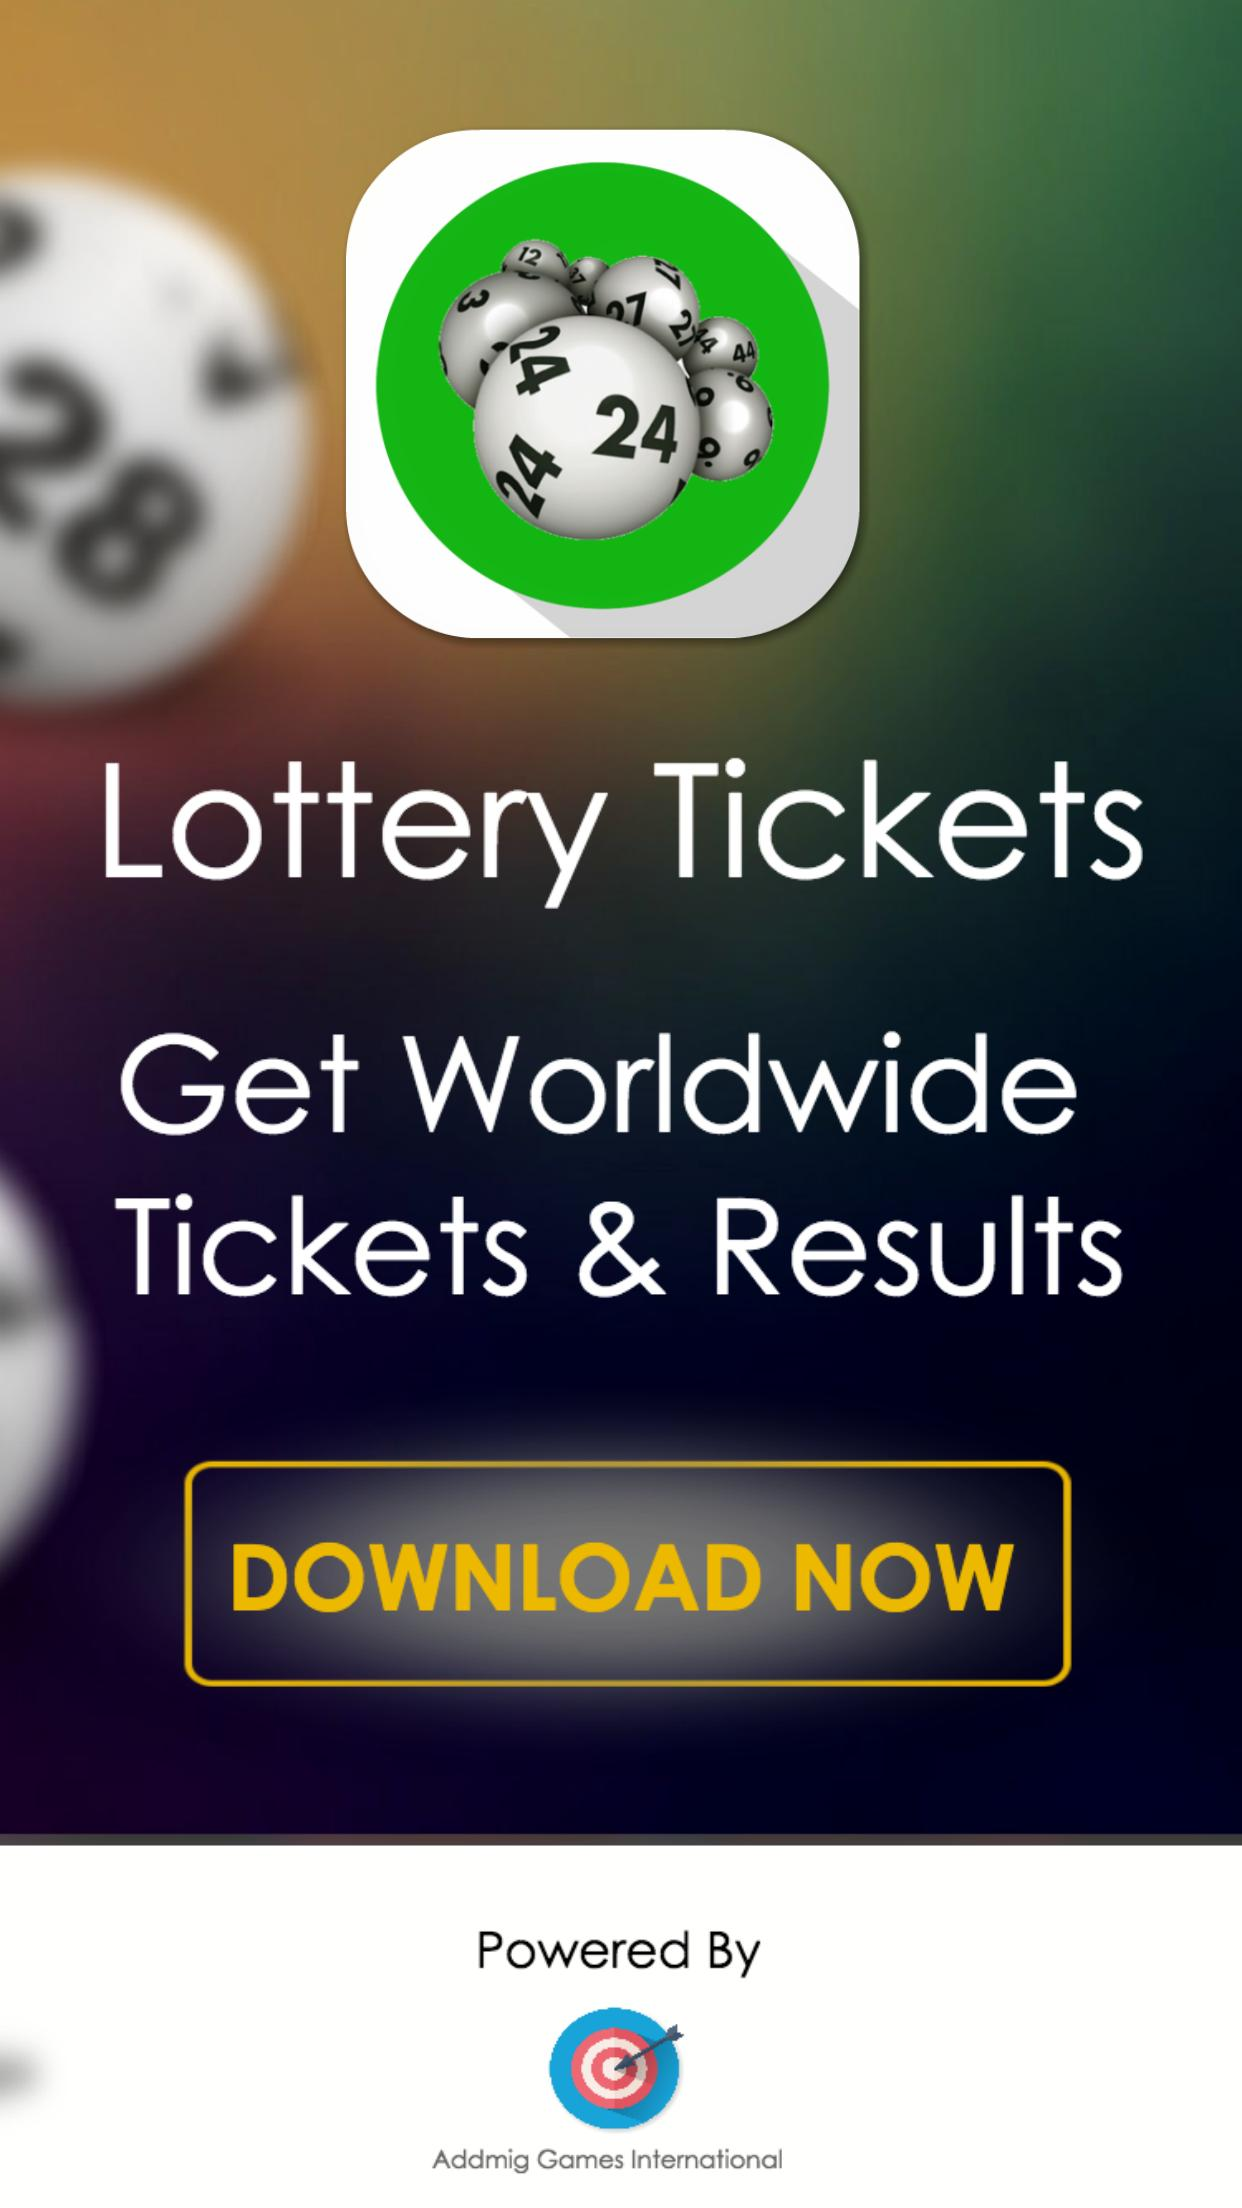 Online Lottery Results App for Android - APK Download